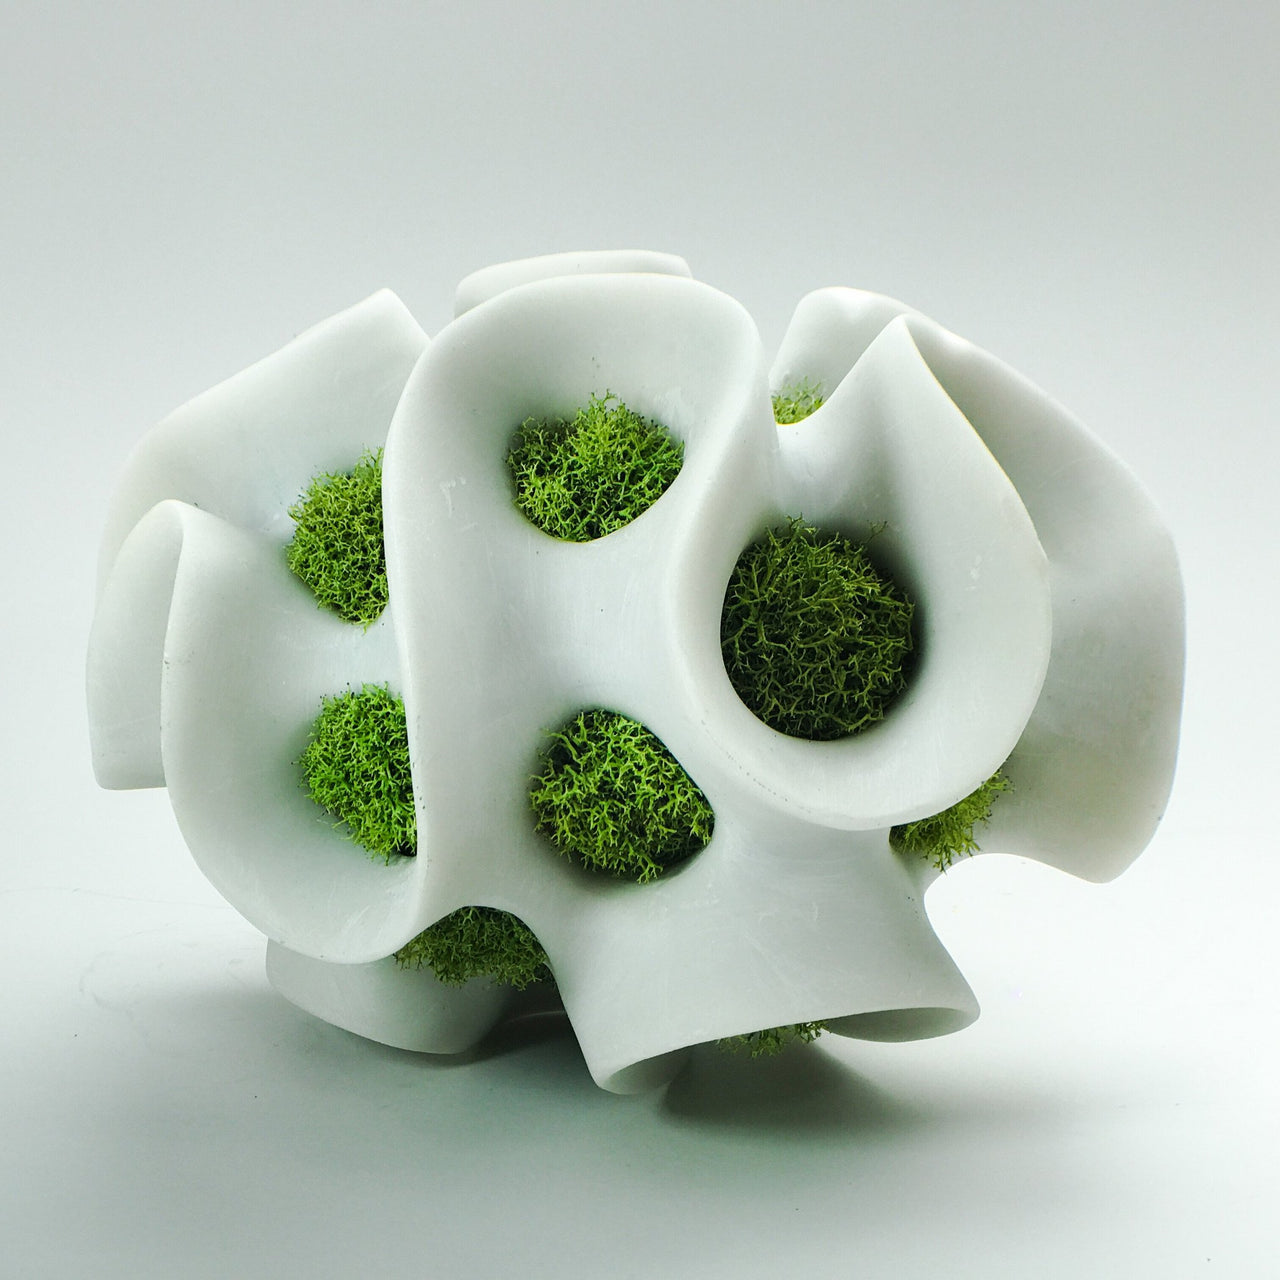 Kelp Sculpture with Decorative Moss - Large (White OR Black)